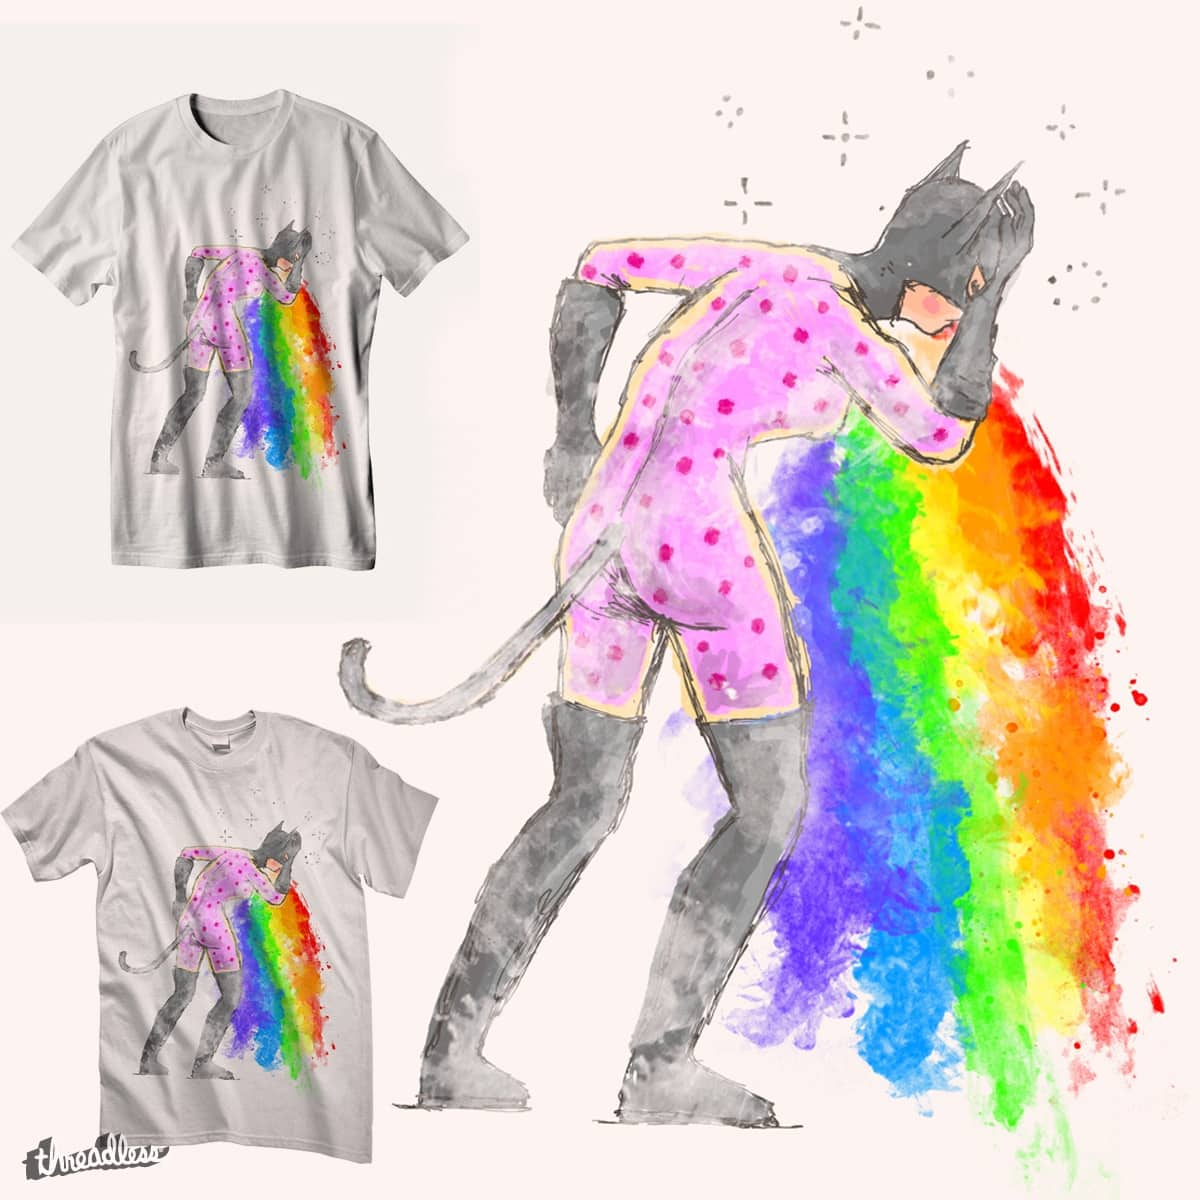 After Nyan's Show by kooky love on Threadless